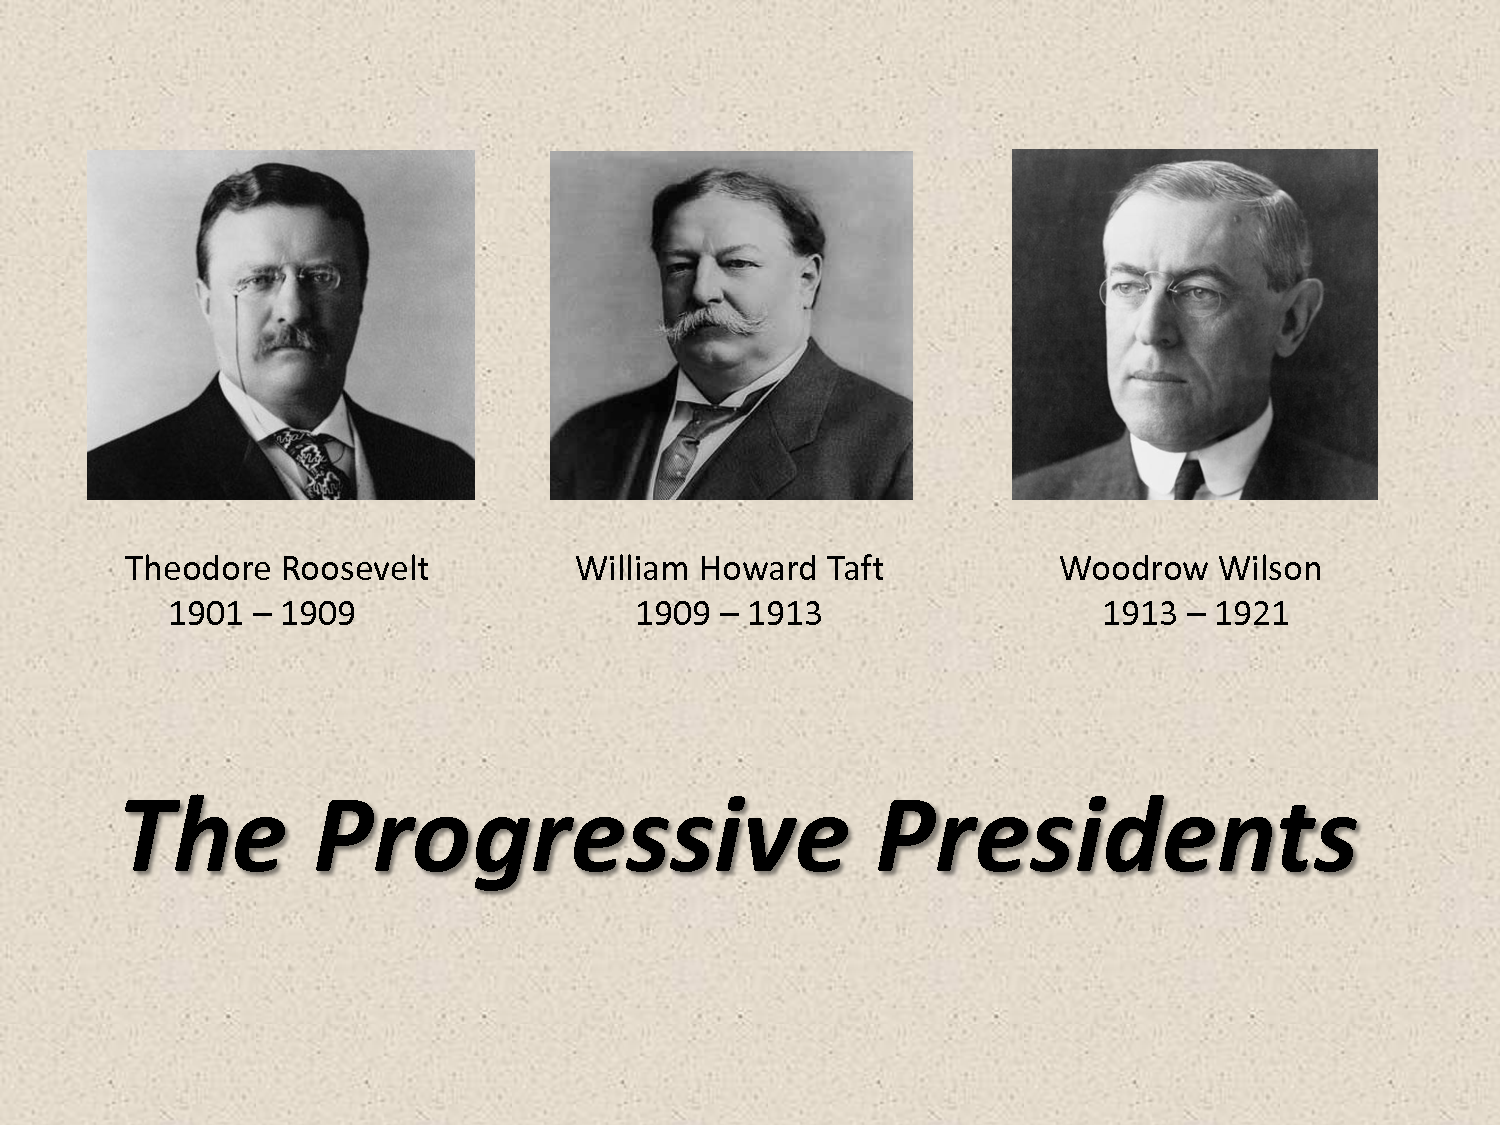 theodore roosevelt the progressive Theodore roosevelt was born at 28 east 20th street, new york city on october 27, 1858 he was the second child of theodore and martha bulloch roosevelt his father was a glass importer and one of new york city's leading philanthropists.